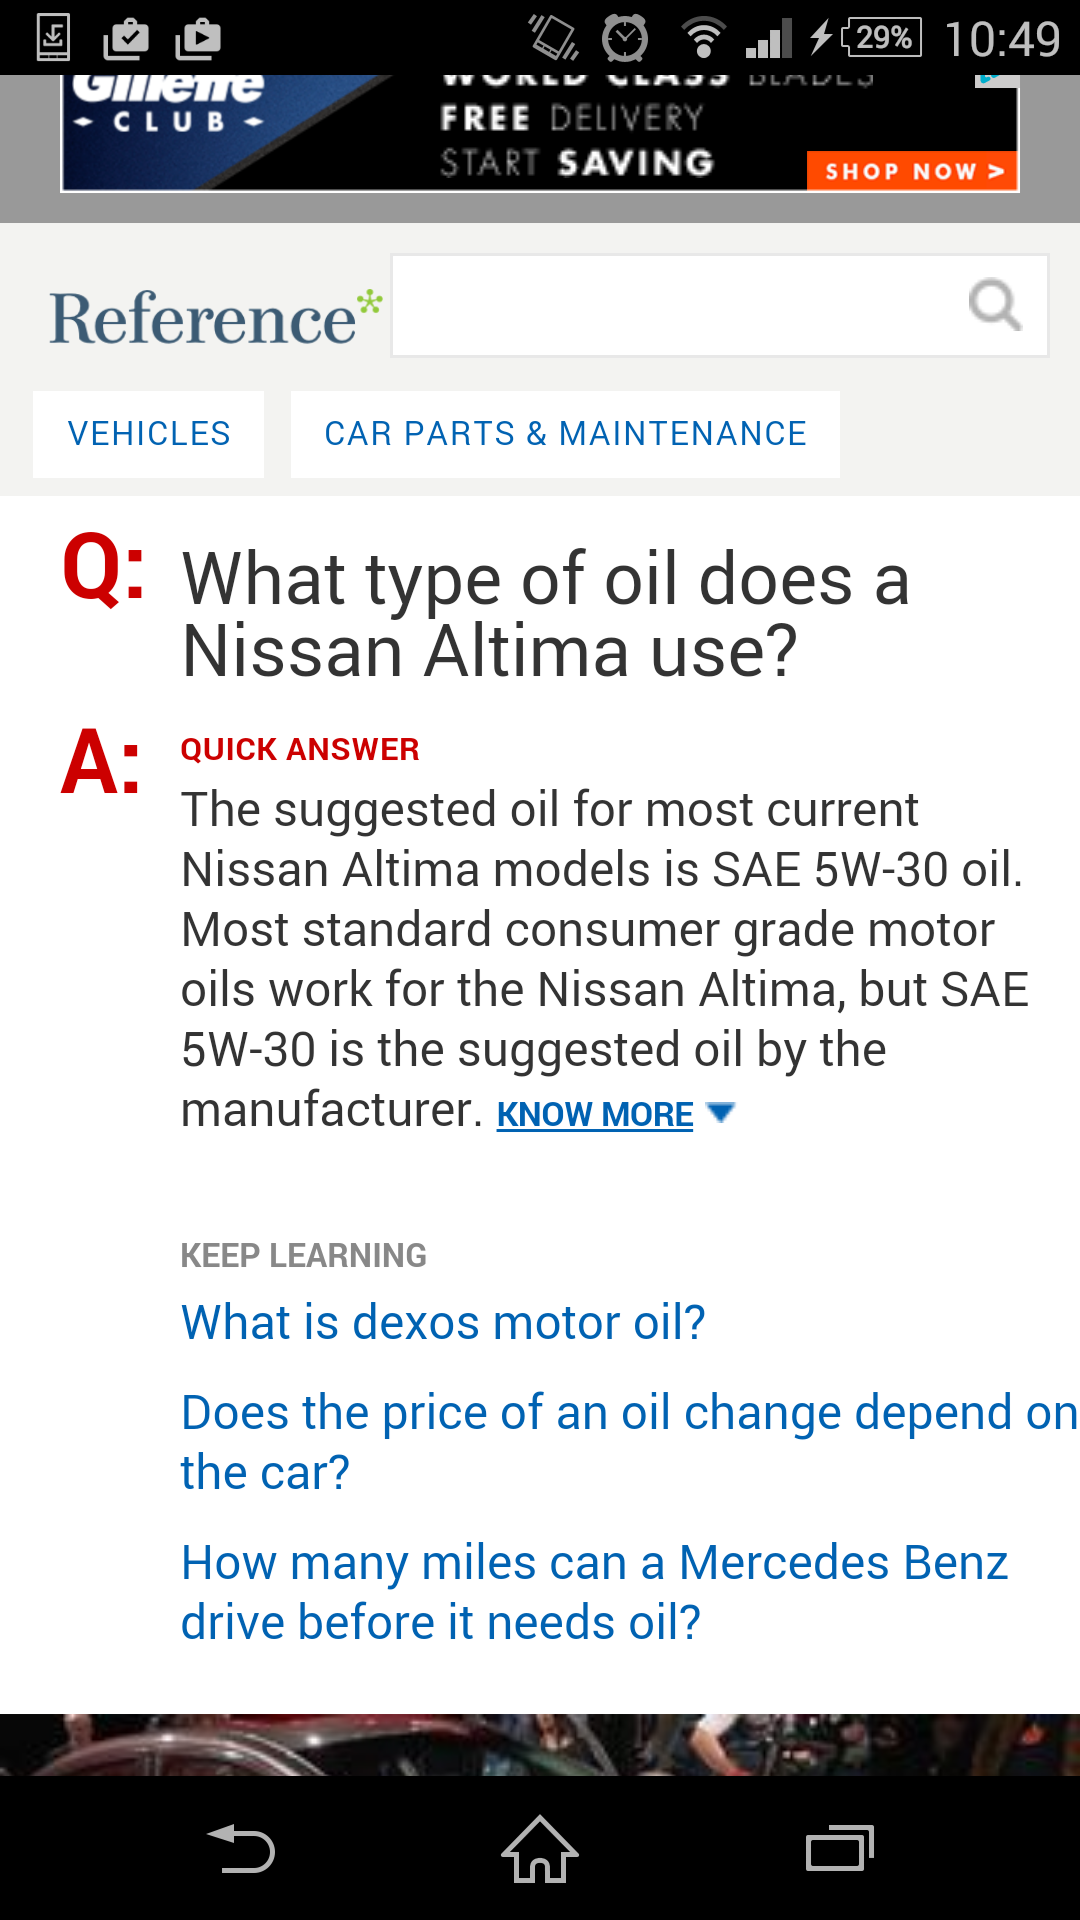 what type of oil does a 2005 nissan altima use? quorahope that information helps